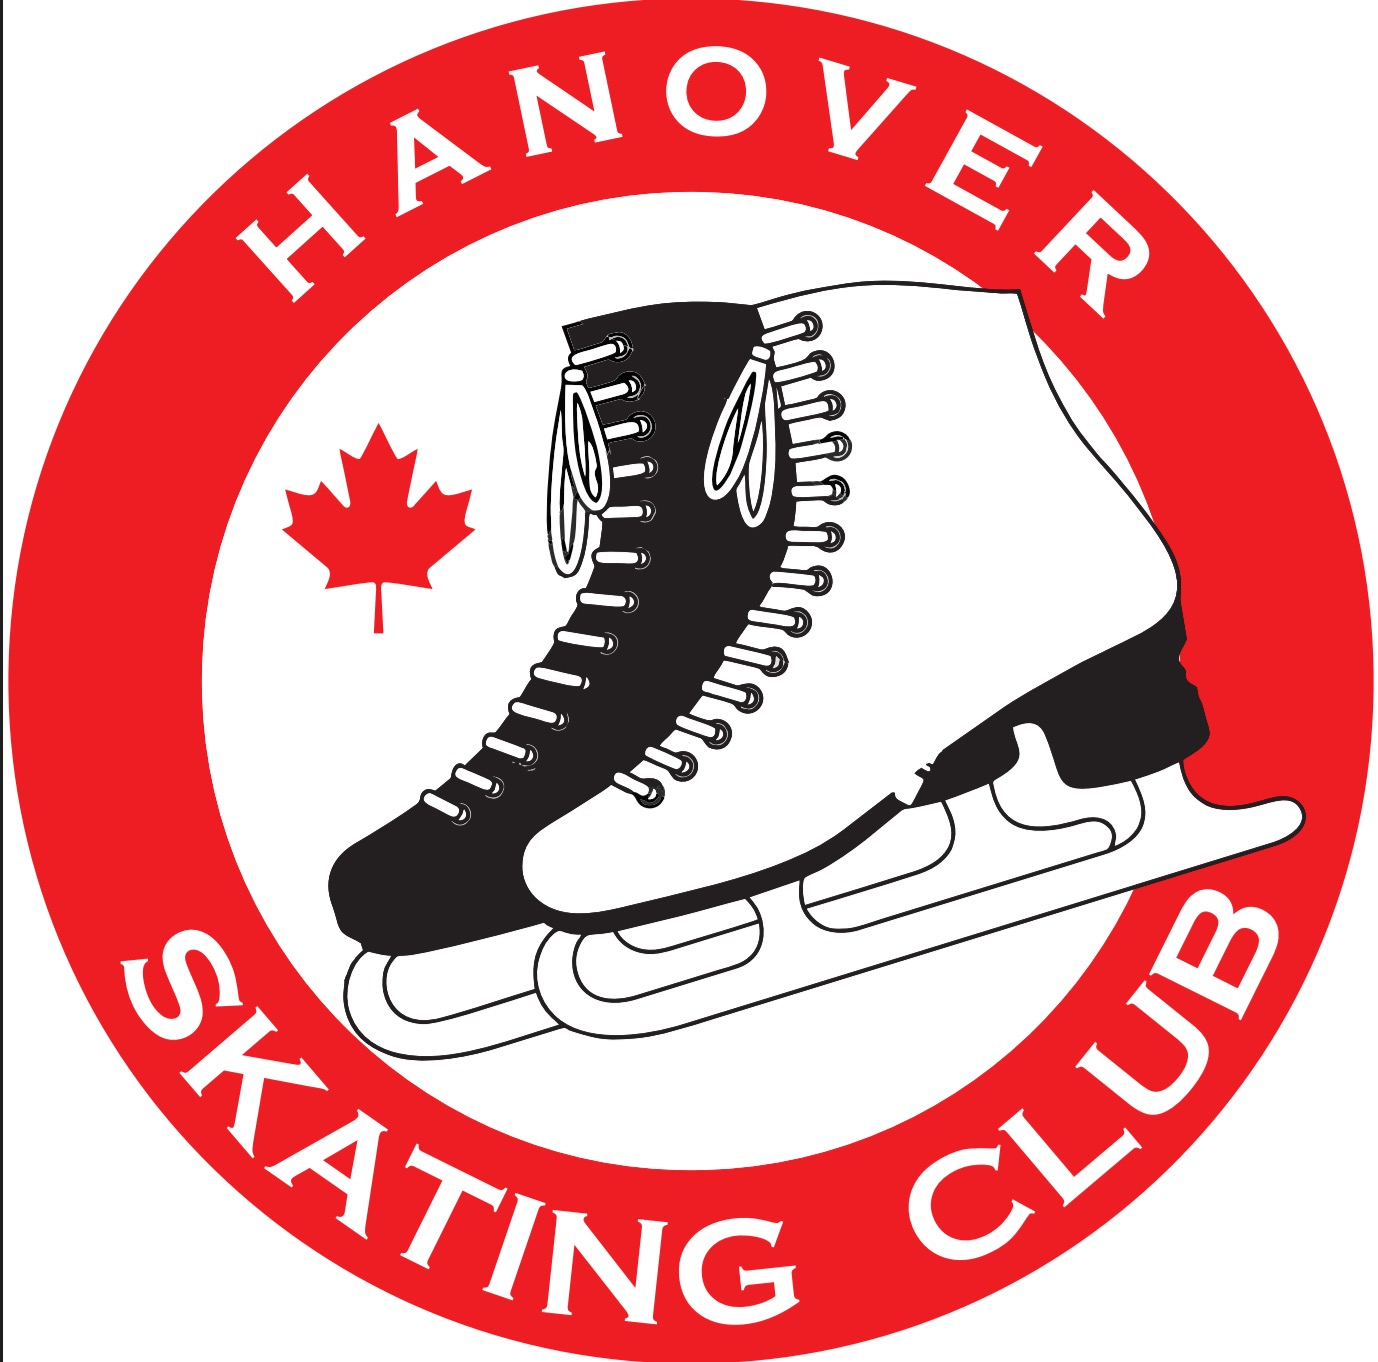 Hanover & District Figure Skating Club